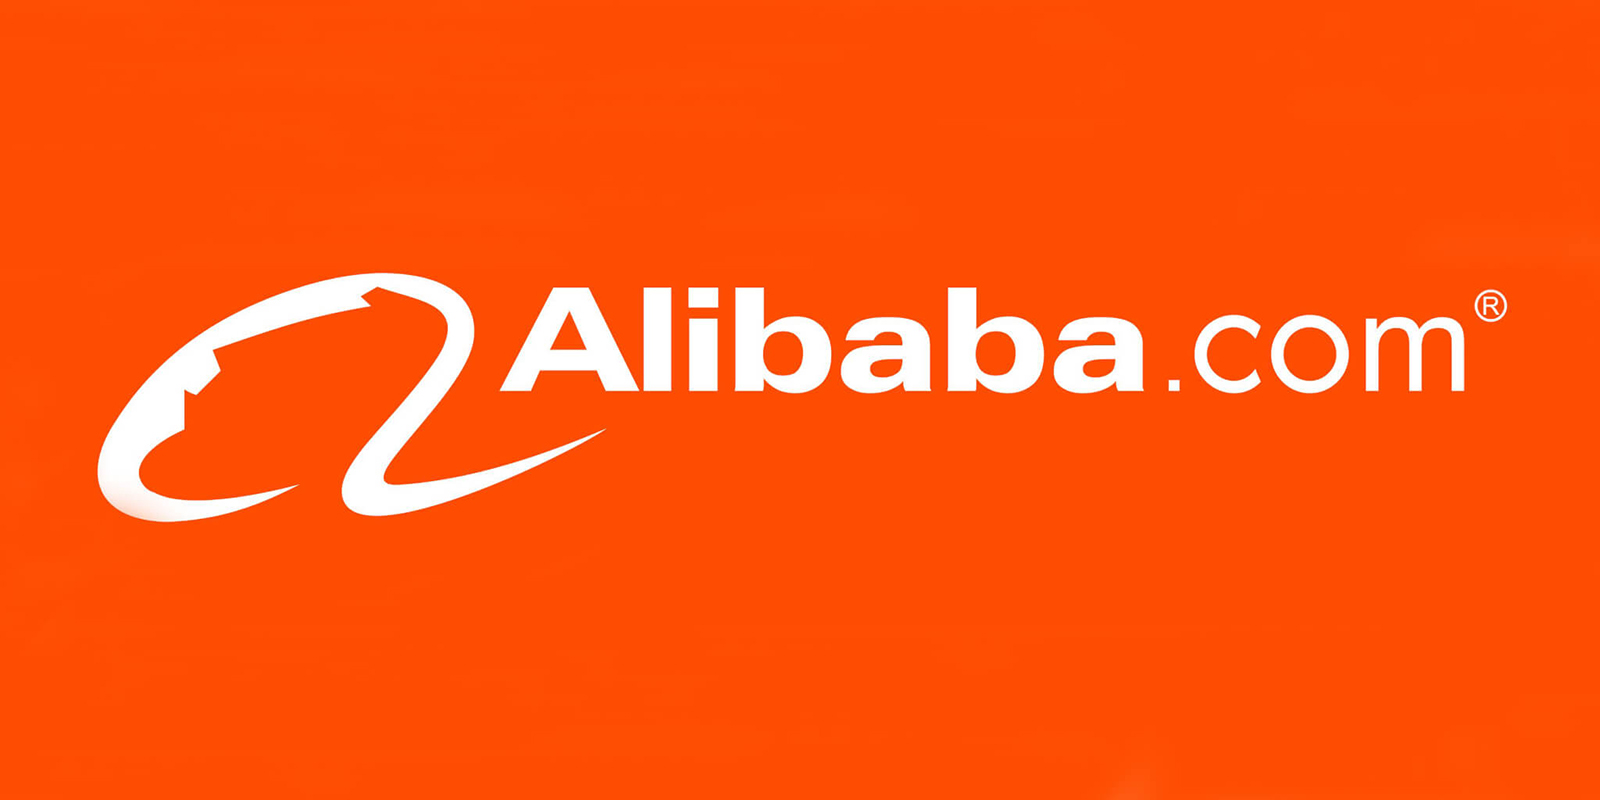 Alibaba partner to release app for mining while driving